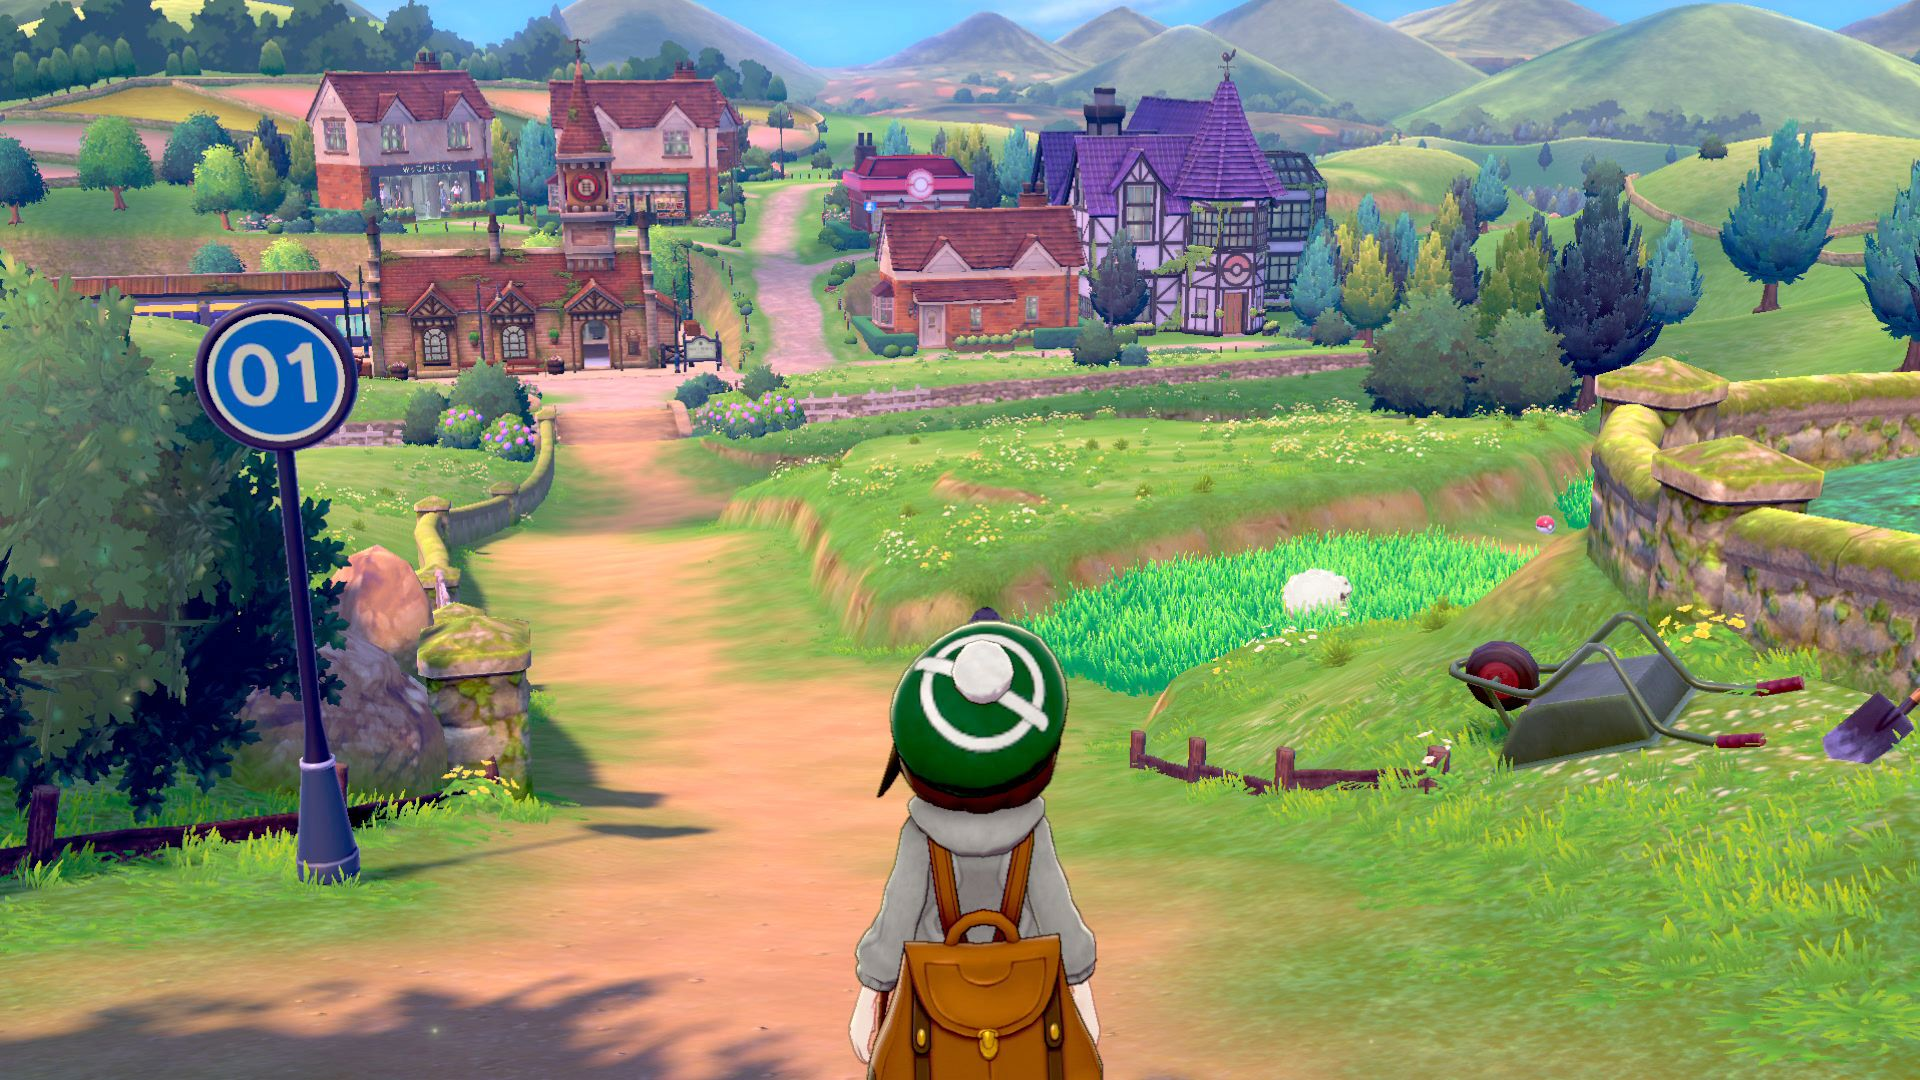 Pokémon Sword and Pokémon Shield: Everything we know